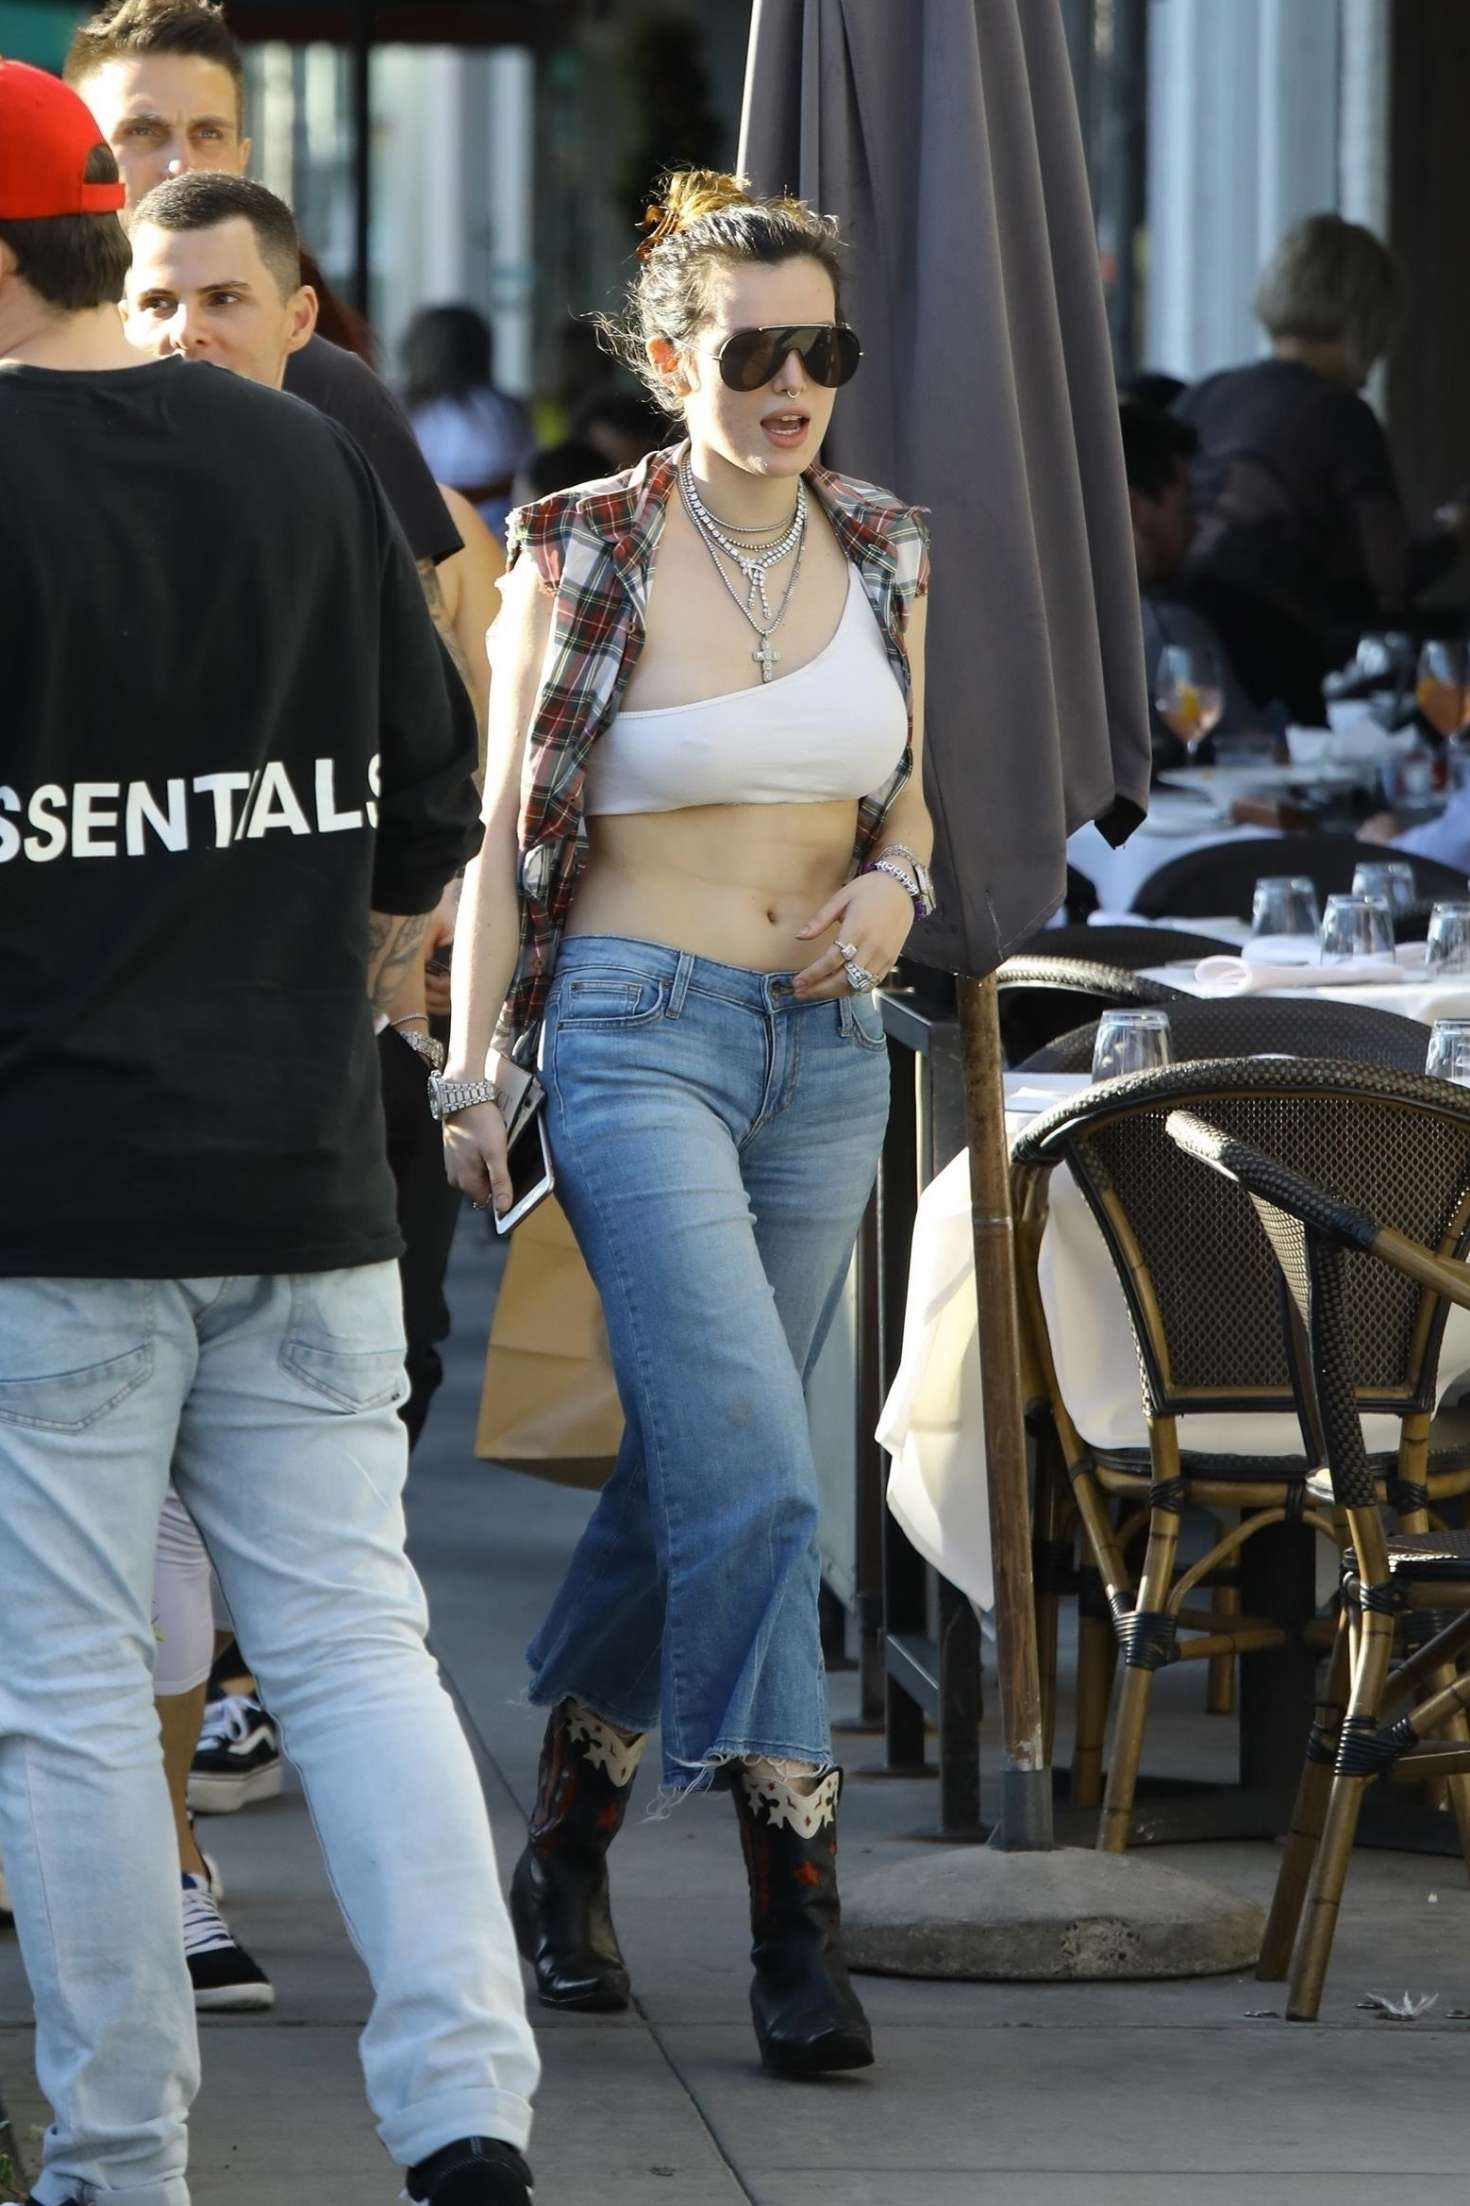 Bella Thorne 2019 : Bella Thorne: Grabbing lunch with friends in LA -07